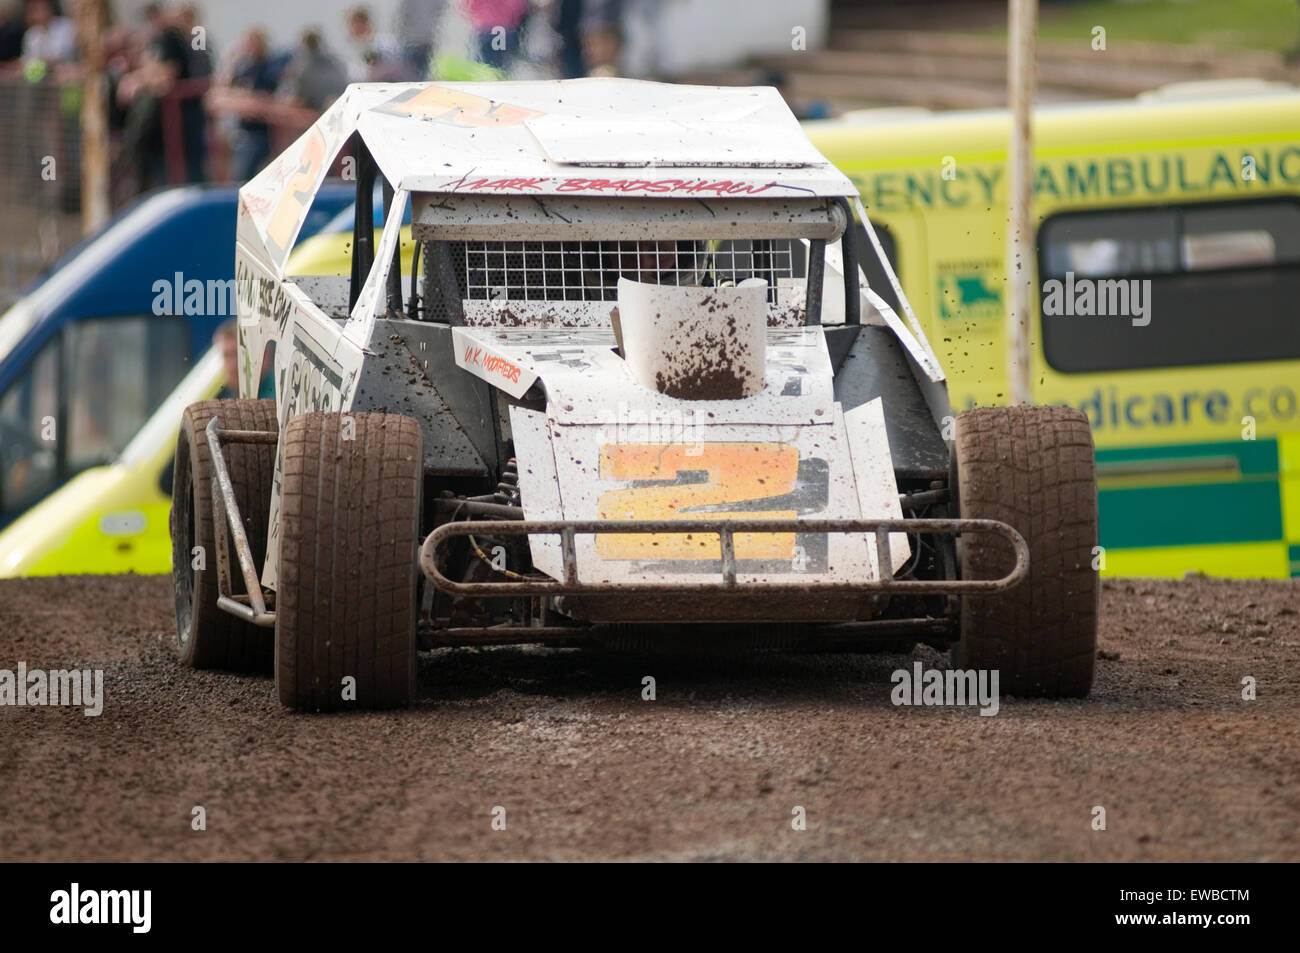 modified stock car cars race racing races dirt oval track tracks short track motorcycle engined engine engines - Stock Image